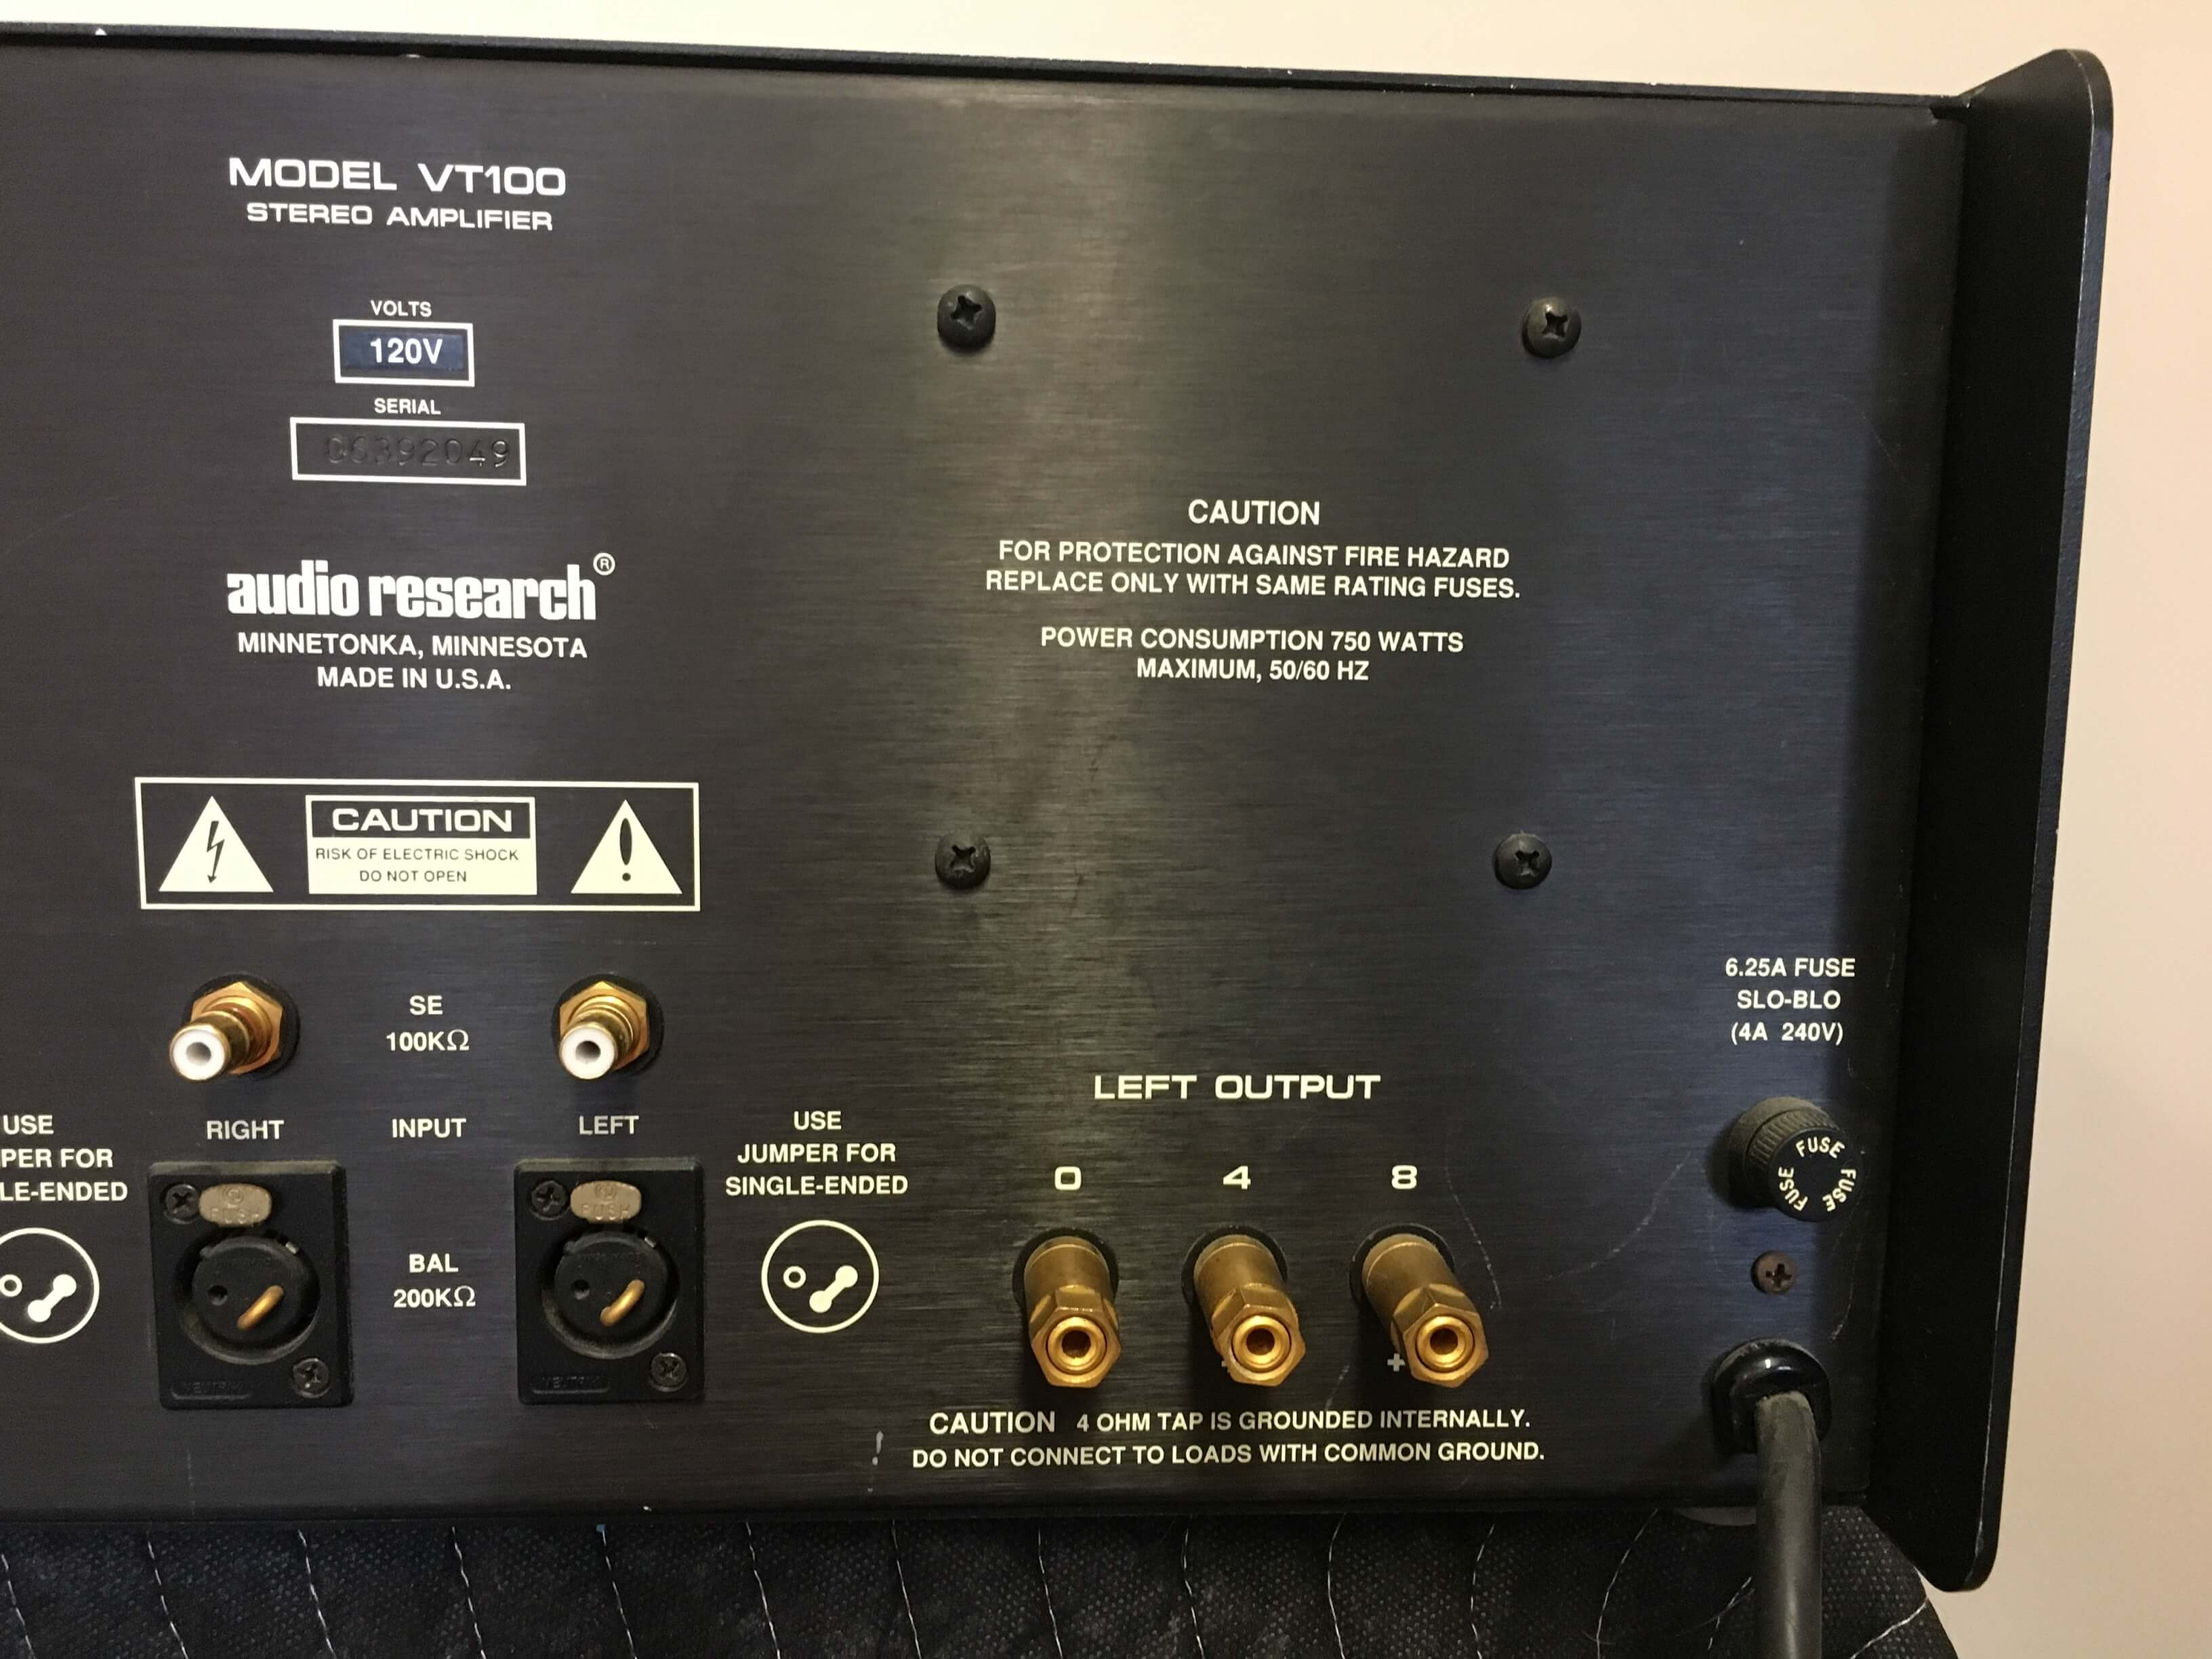 Audio Research VT 100 high definition vacuum tube power amplifier